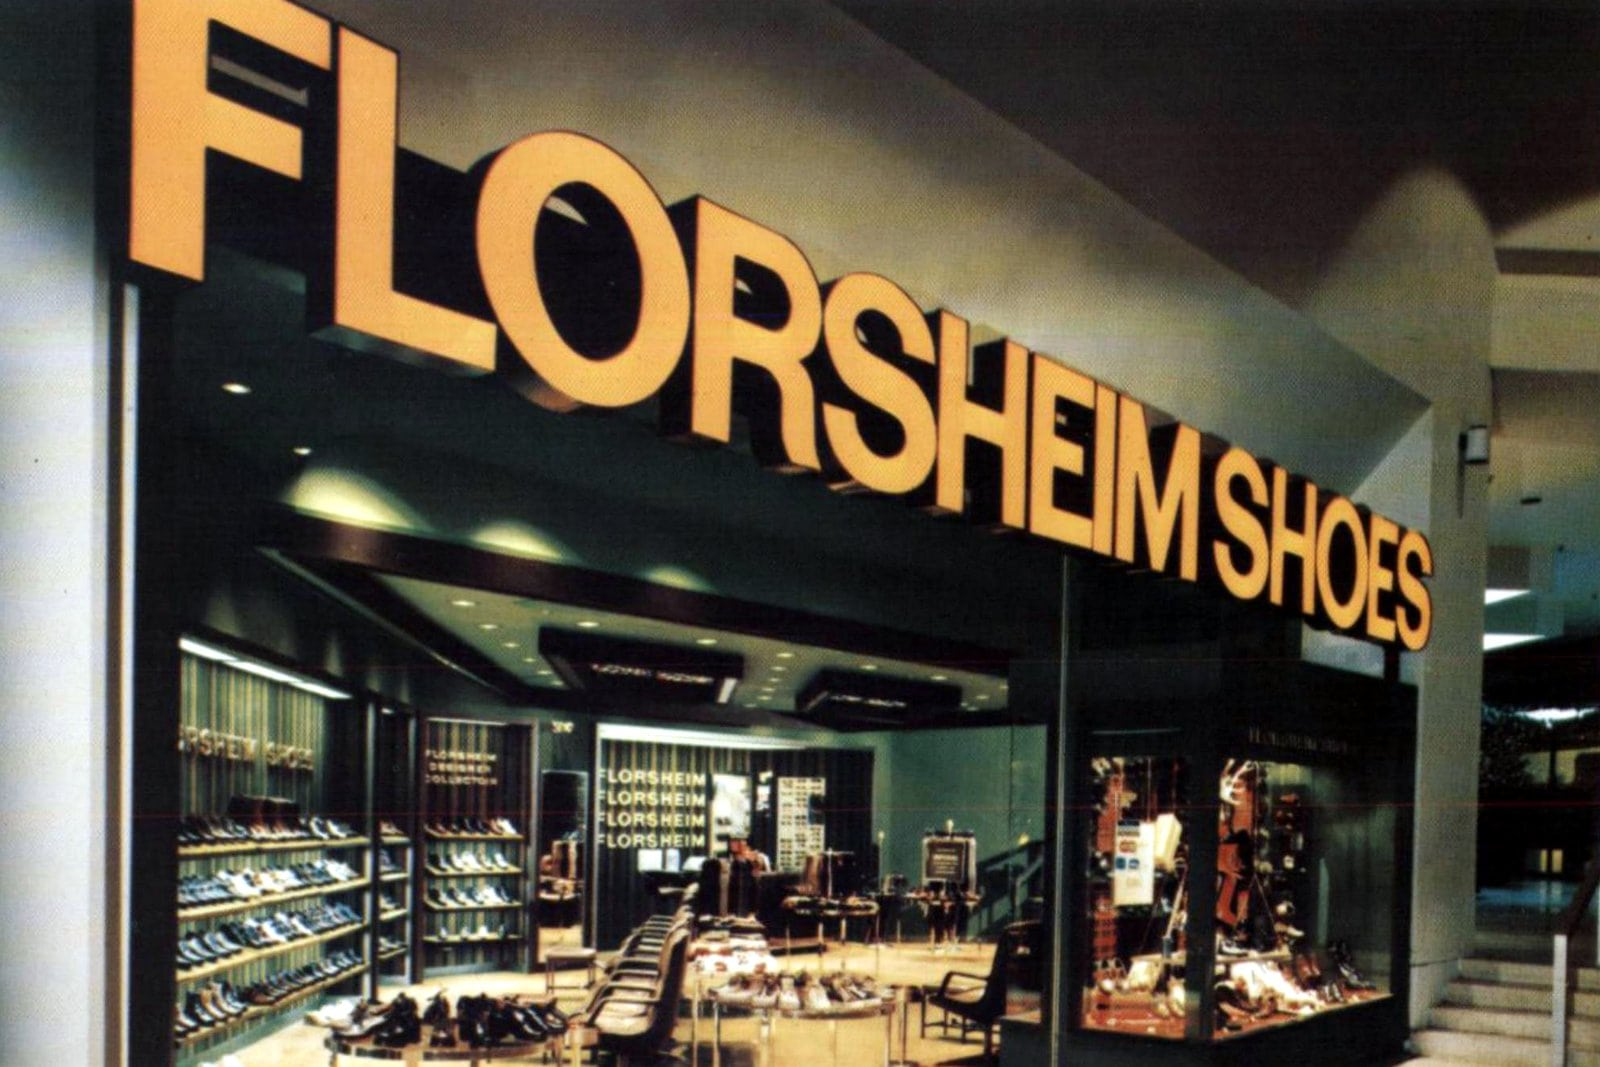 Retro Florsheim Shoes store at a mall (1973)